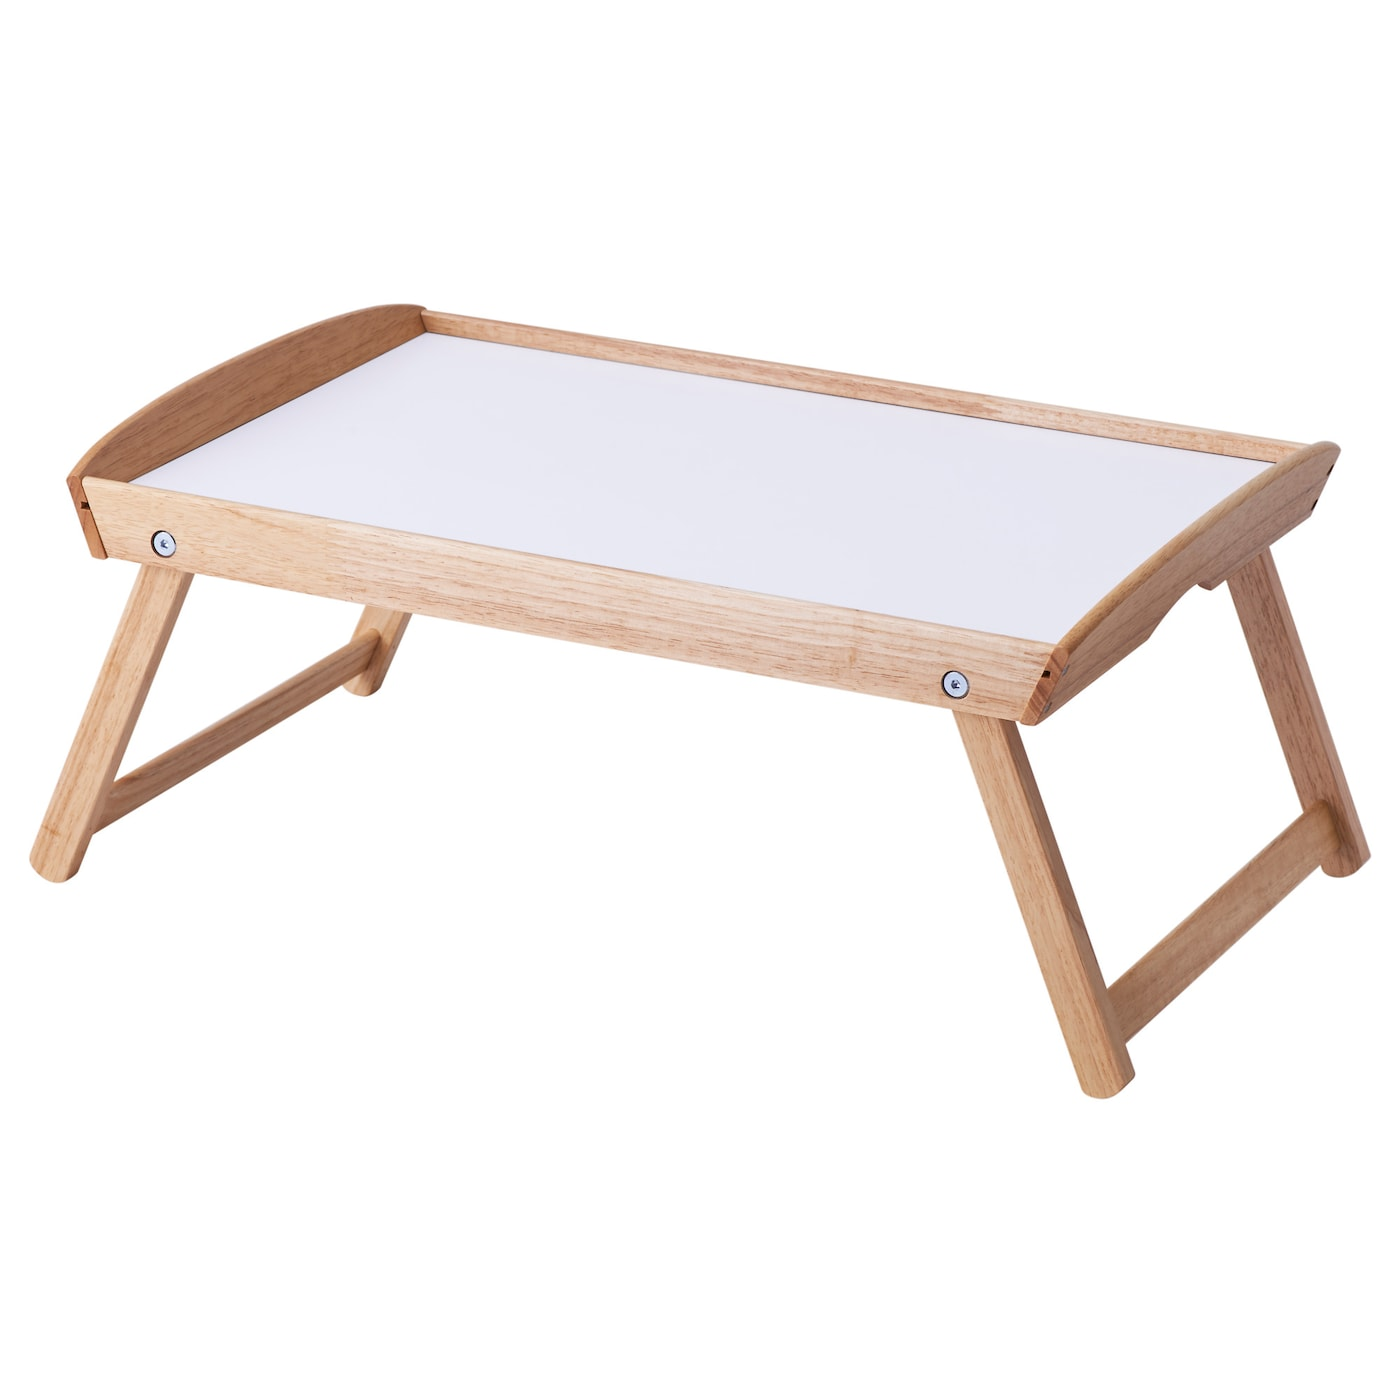 IKEA DJURA bed tray Easy to fold up and easy to move.